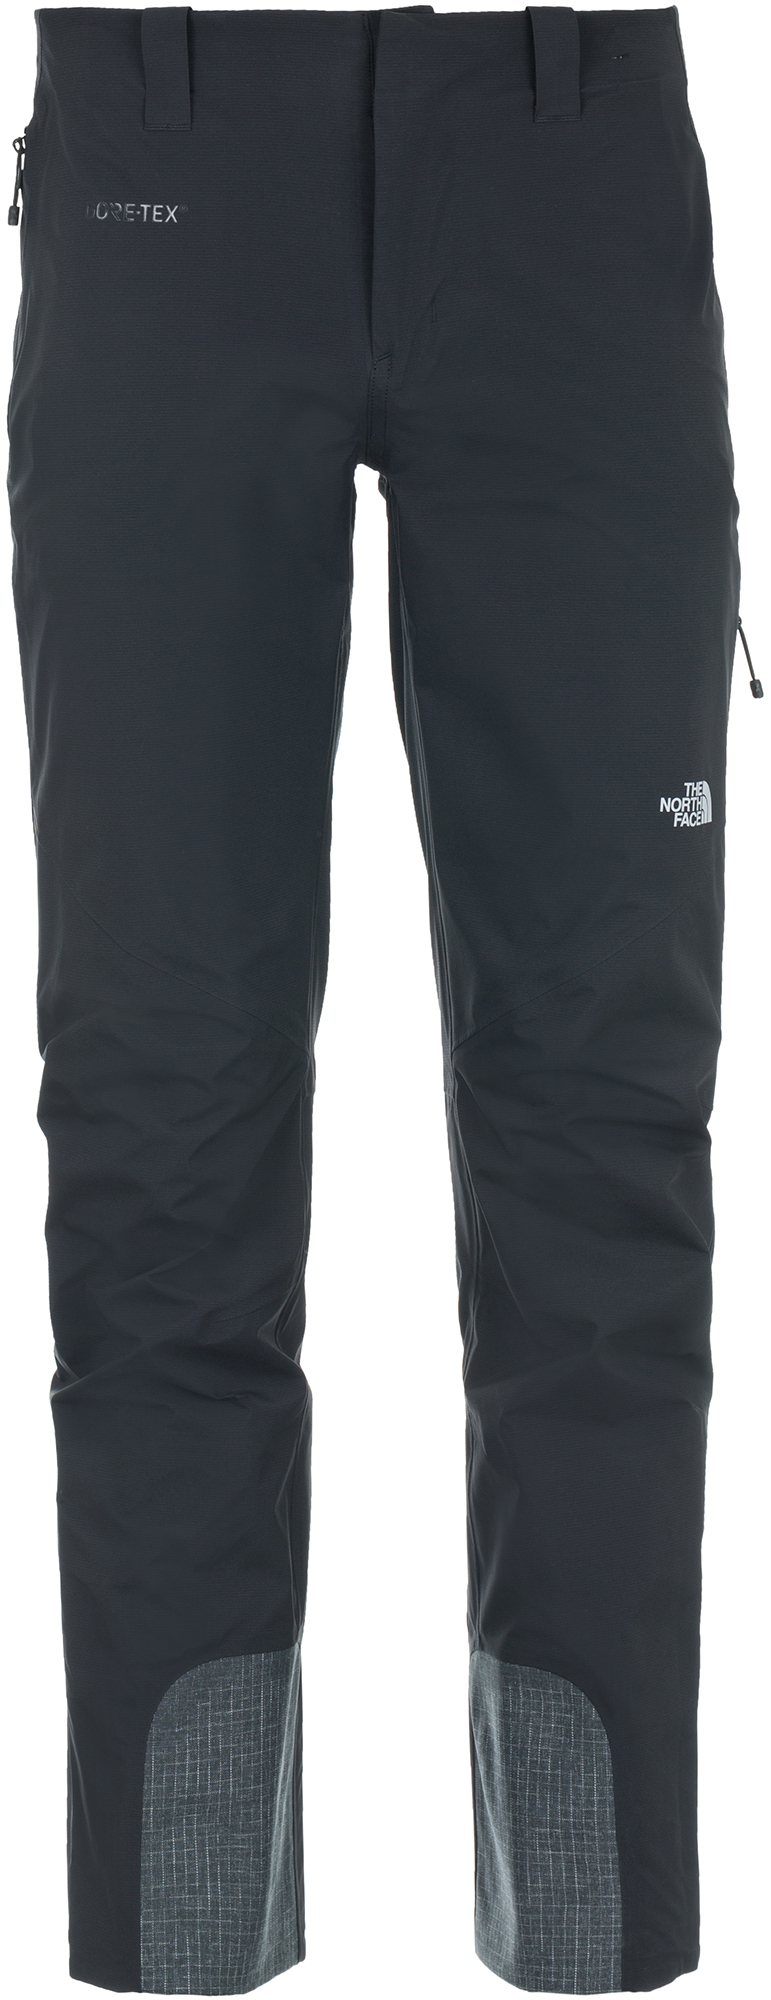 The North Face Брюки женские The North Face Shinpuru the north face брюки женские the north face hybrid